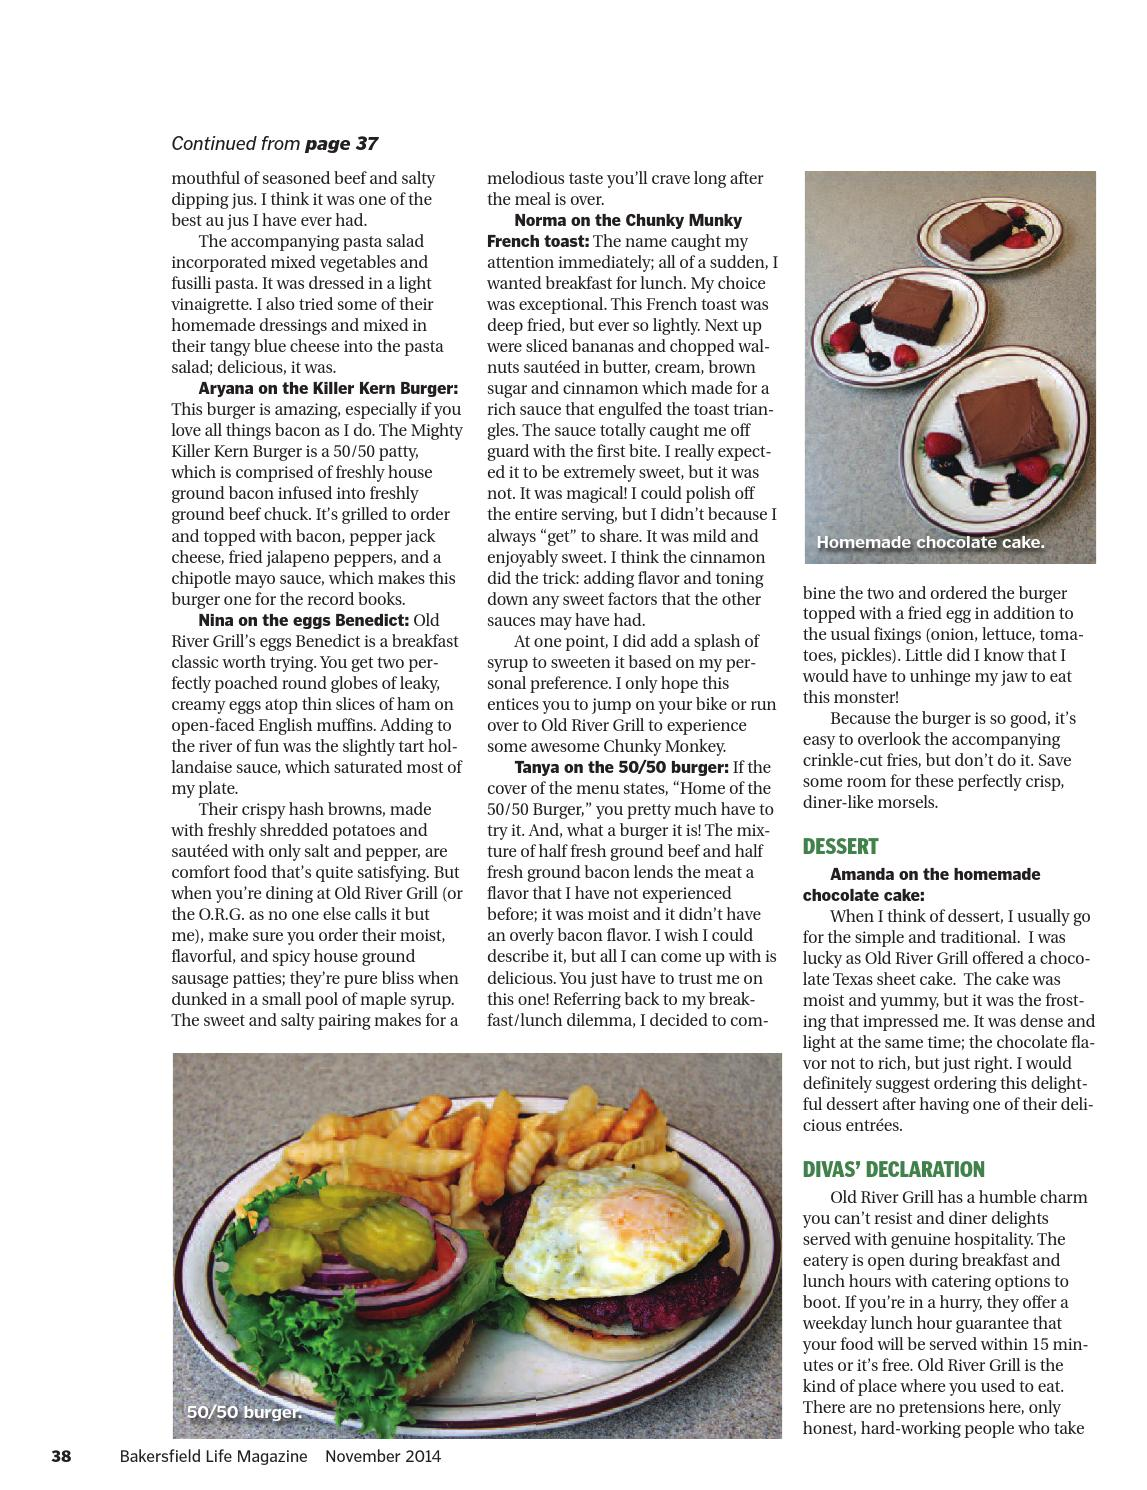 Bakersfield Life Magazine November 2014 by The Bakersfield